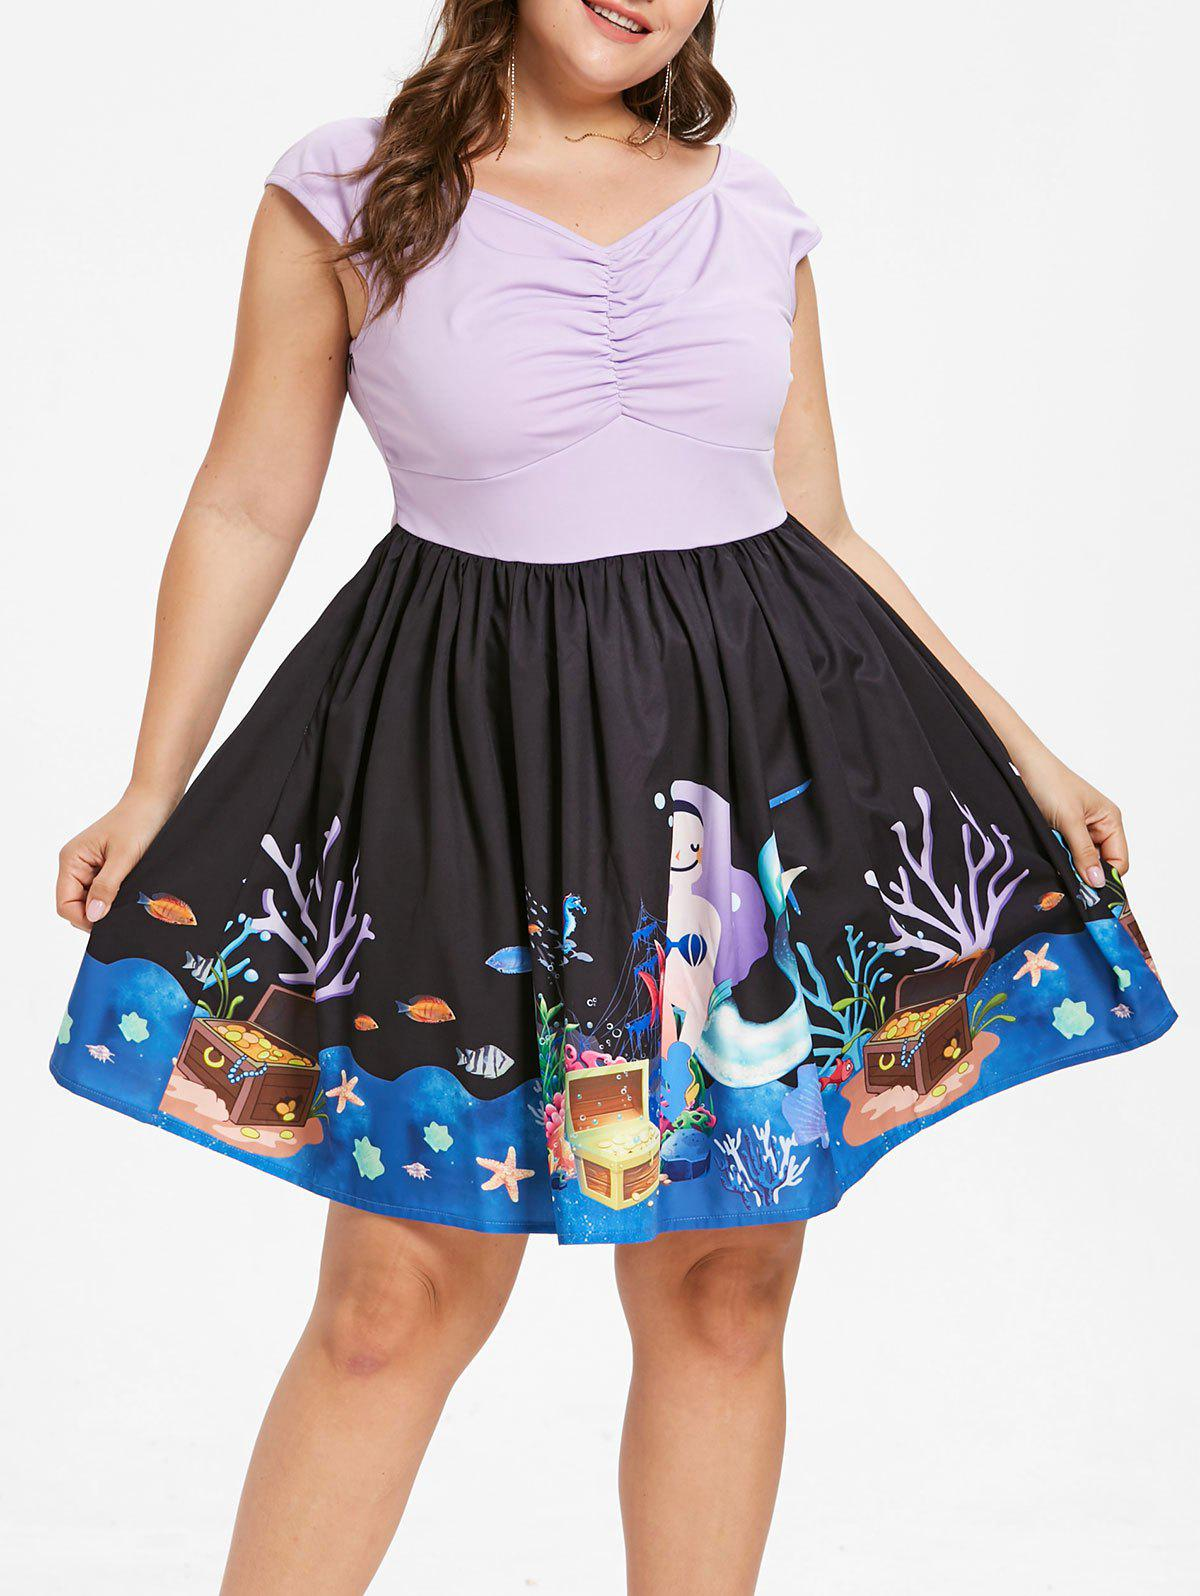 Plus Size Cap Sleeve Underwater Print Dress - MAUVE 4X